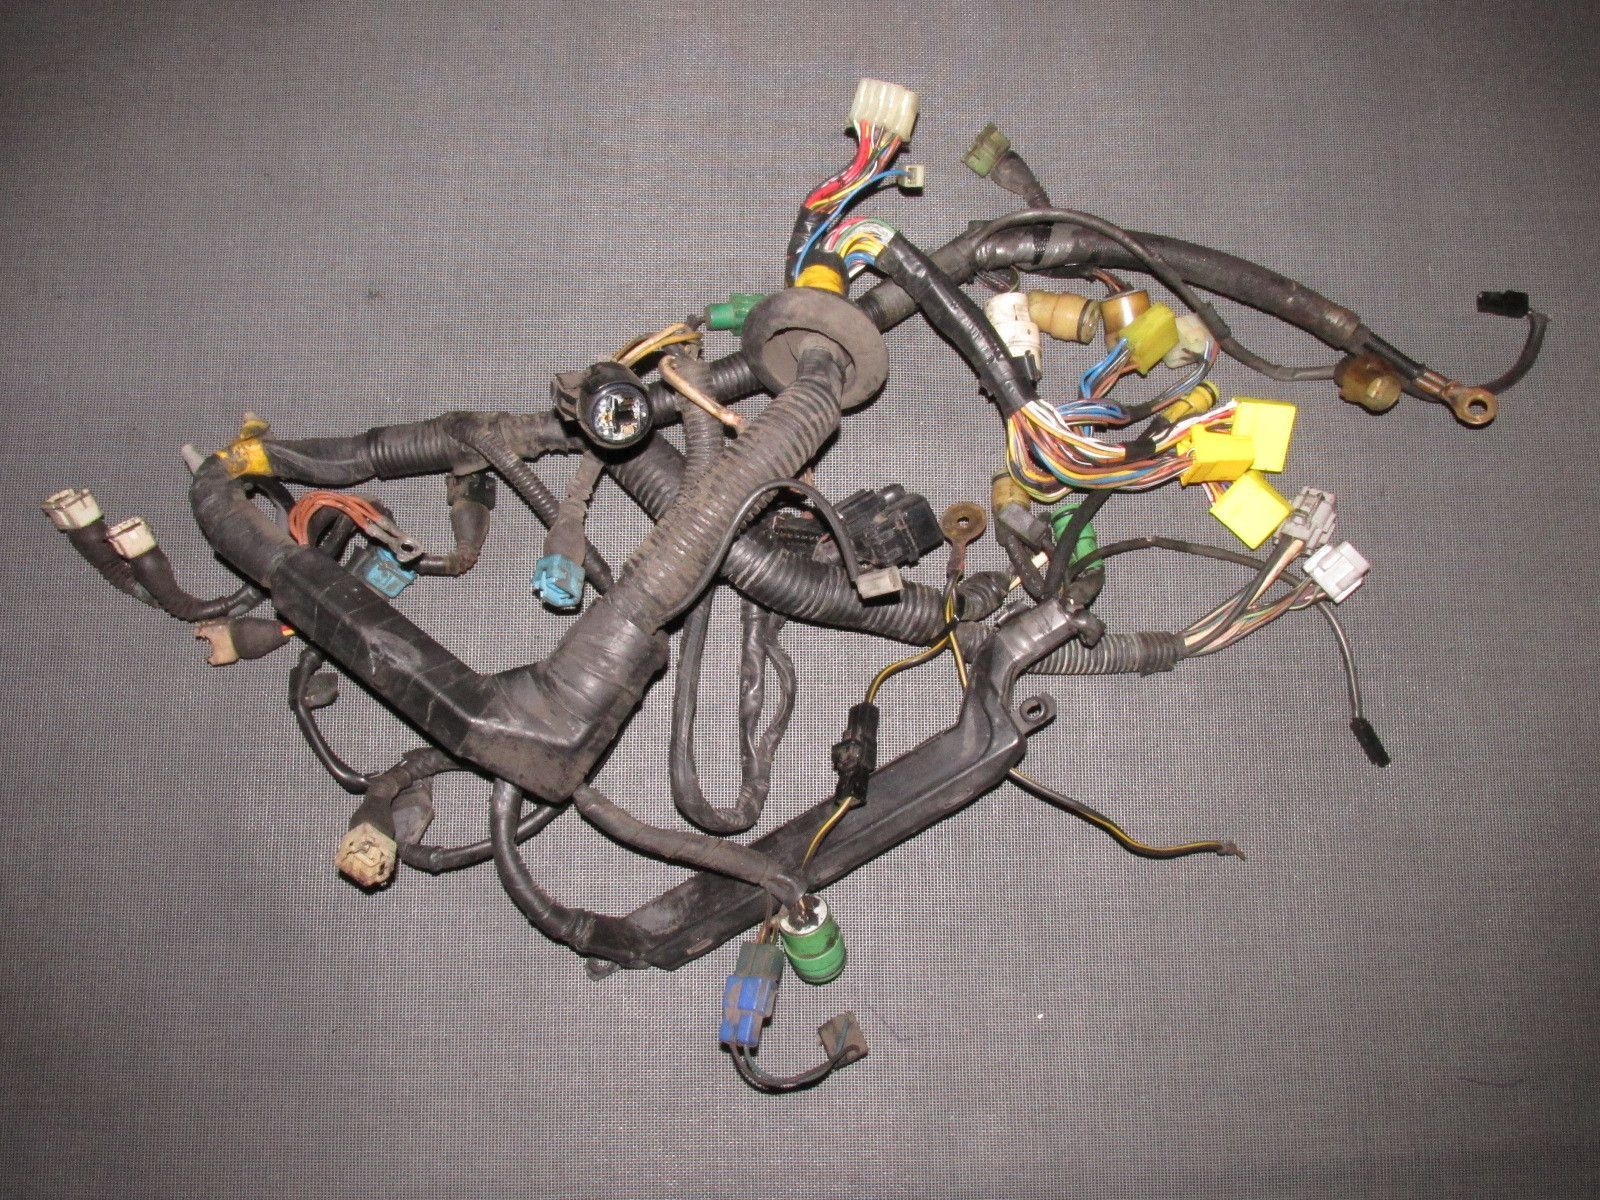 91 Mr2 Wire Loom Diagram Wiring Library 1987 Toyota 85 86 87 88 89 Oem 4age Engine Harness Cars